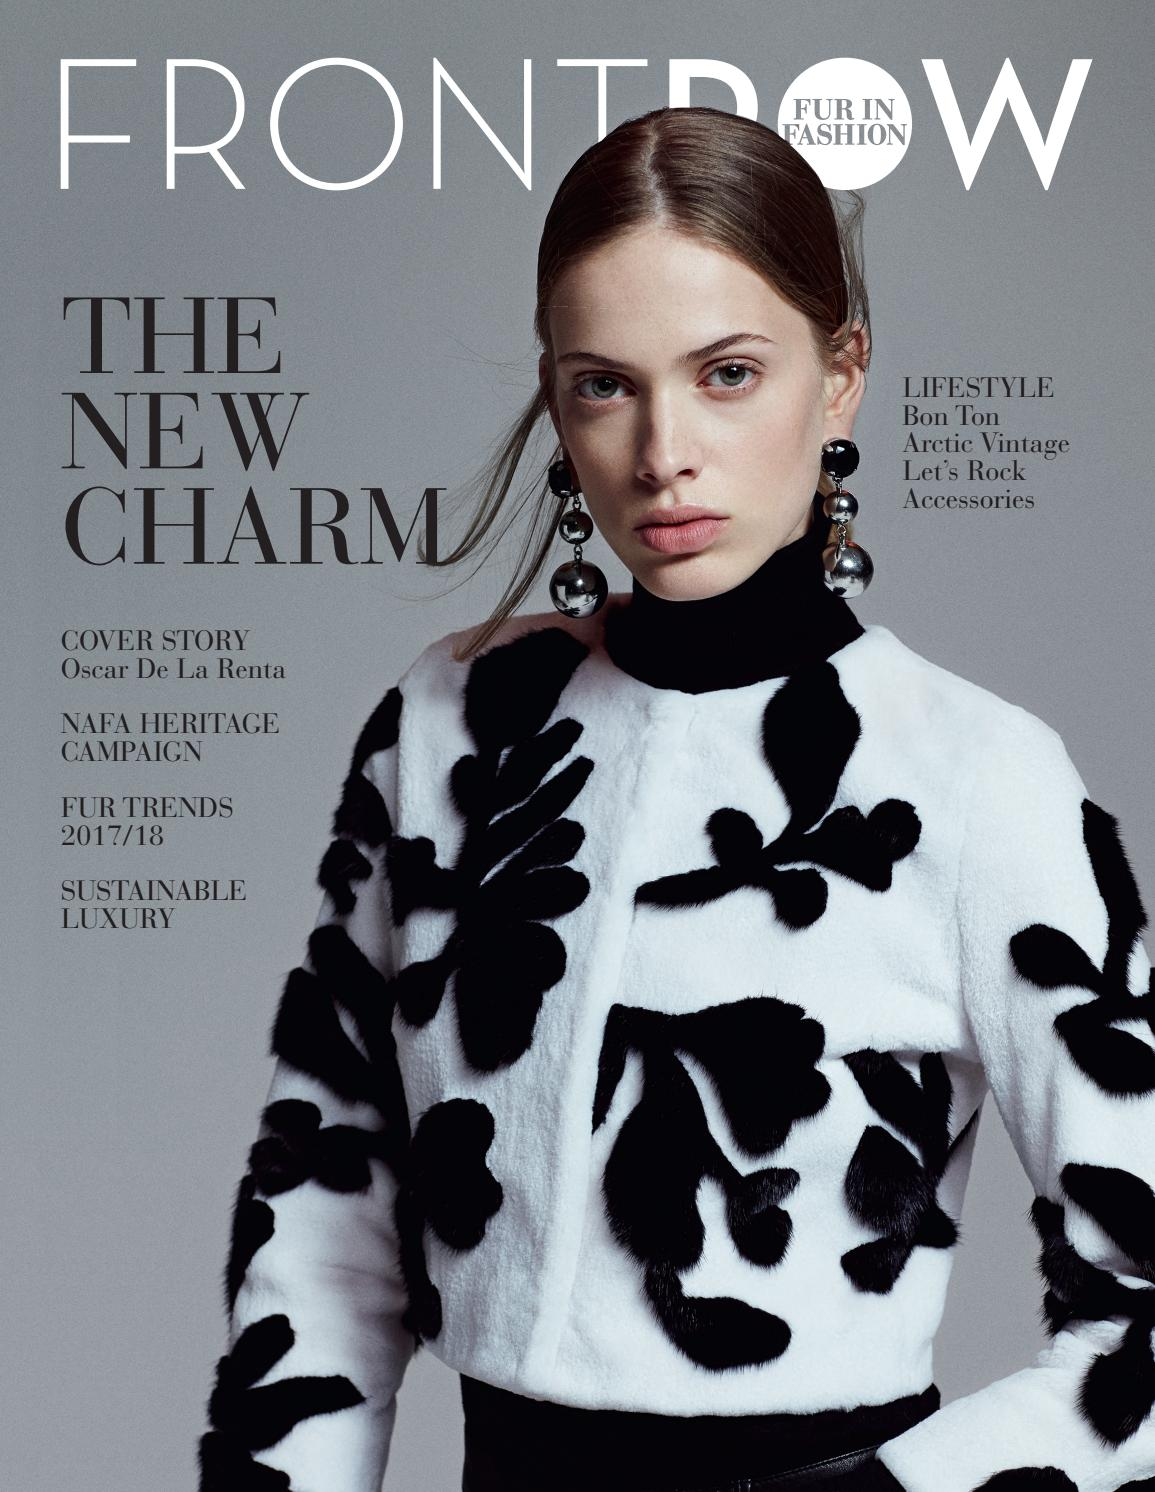 FrontROW fur in fashion by FRONTROW FUR IN FASHION issuu